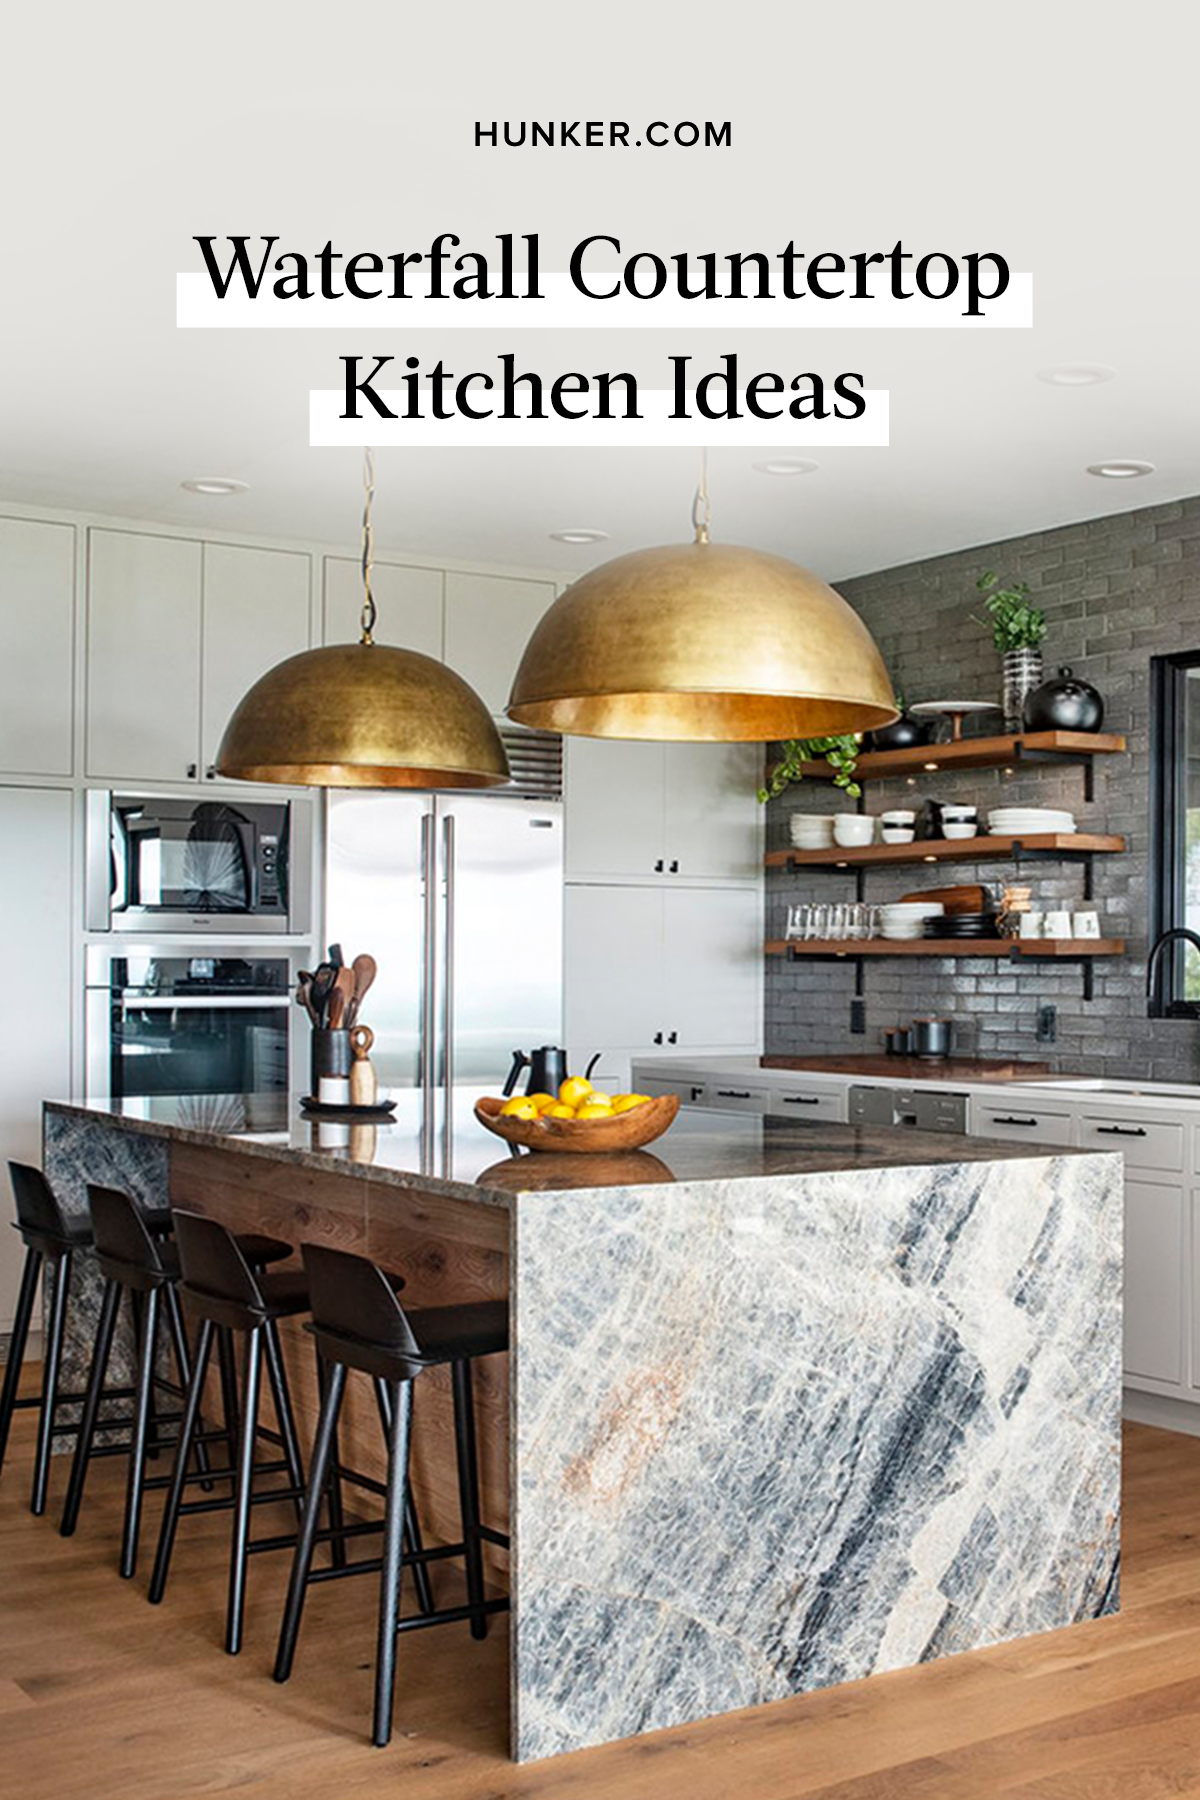 News Alert Waterfall Countertops Are No Longer Just For Marble